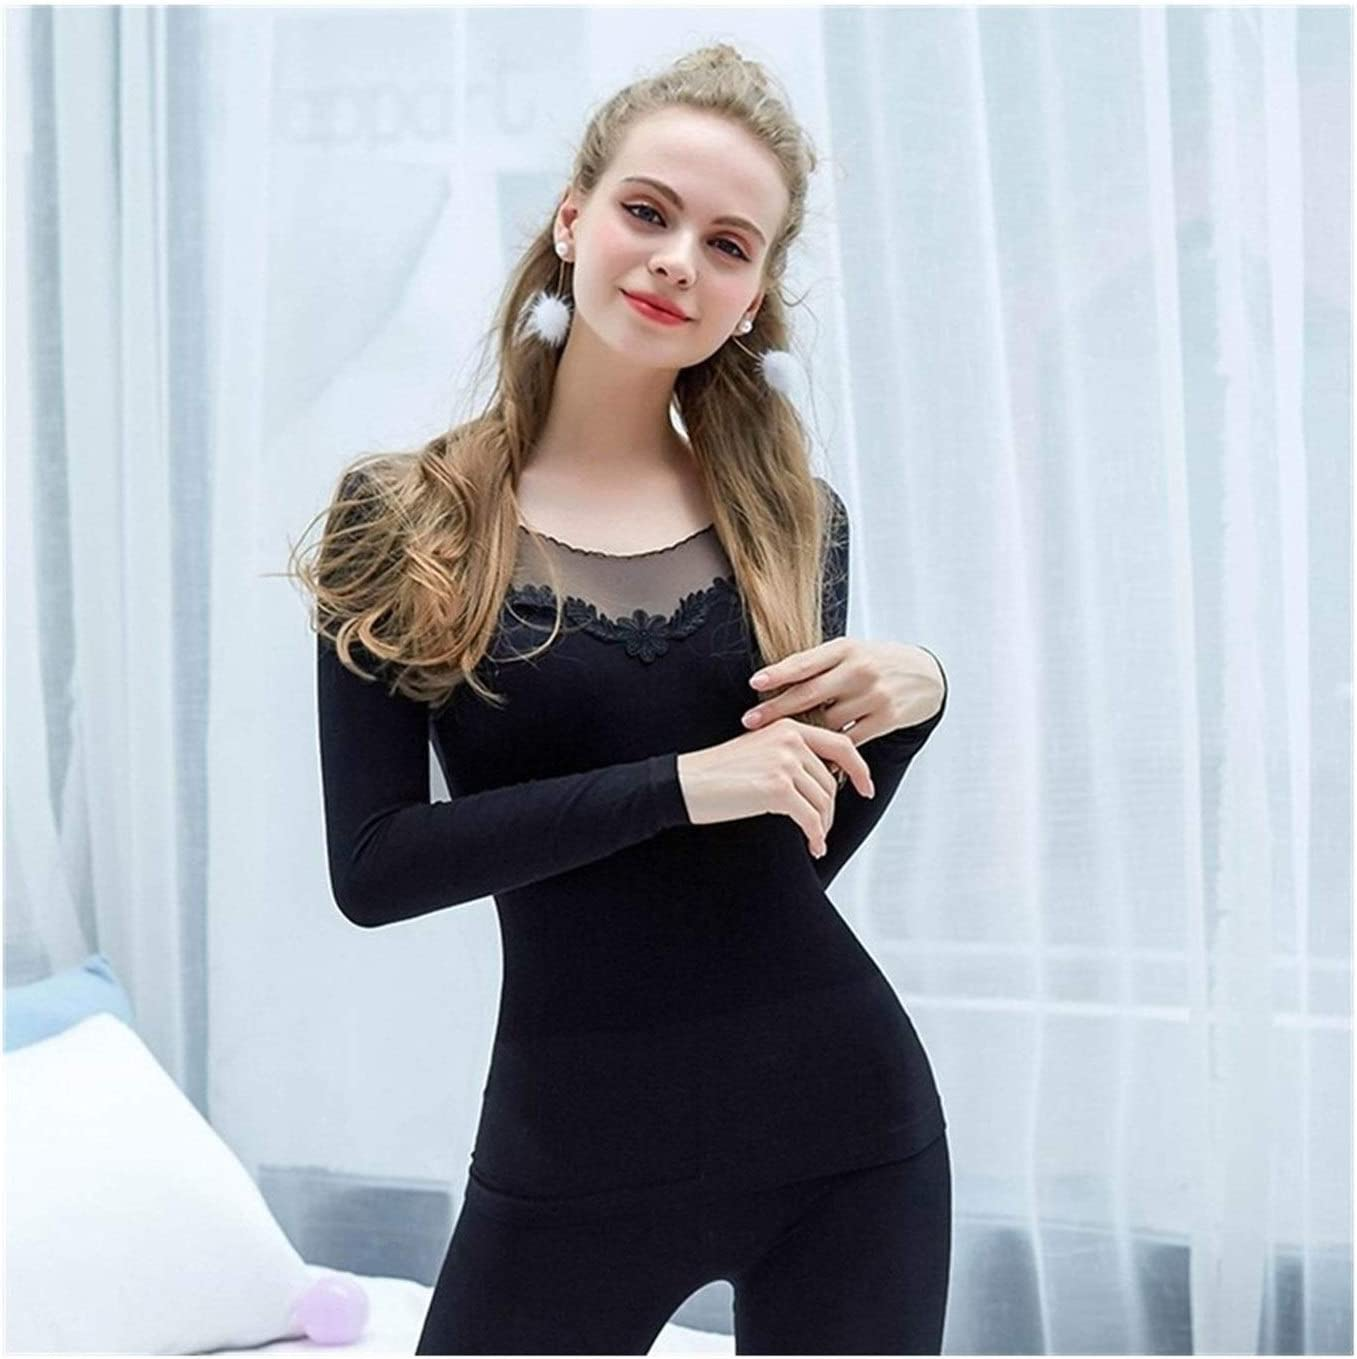 QWERBAM Thermal Underwear for Women Autumn Warm Seamless Winter Fitness Thermal Underwear Set Warm Clothing (Color : Black, Size : One Size)